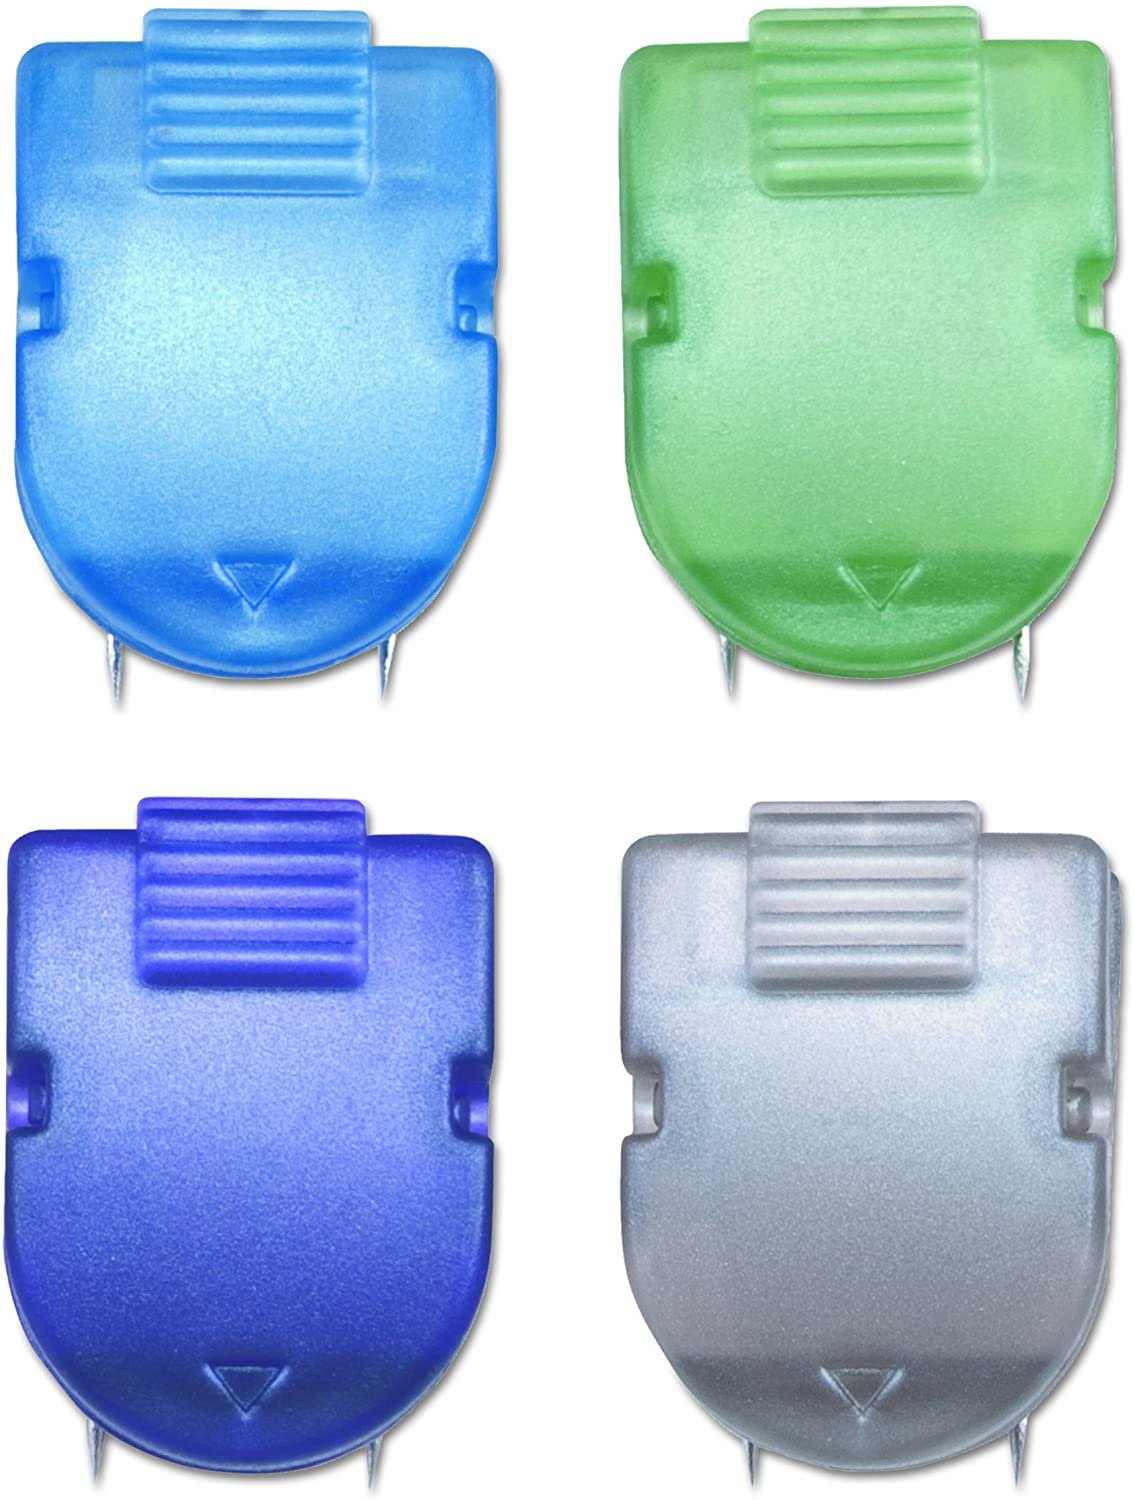 ADVANTUS Panel Wall Clip for Fabric Panels, Standard 20-Pack Metallic Colors